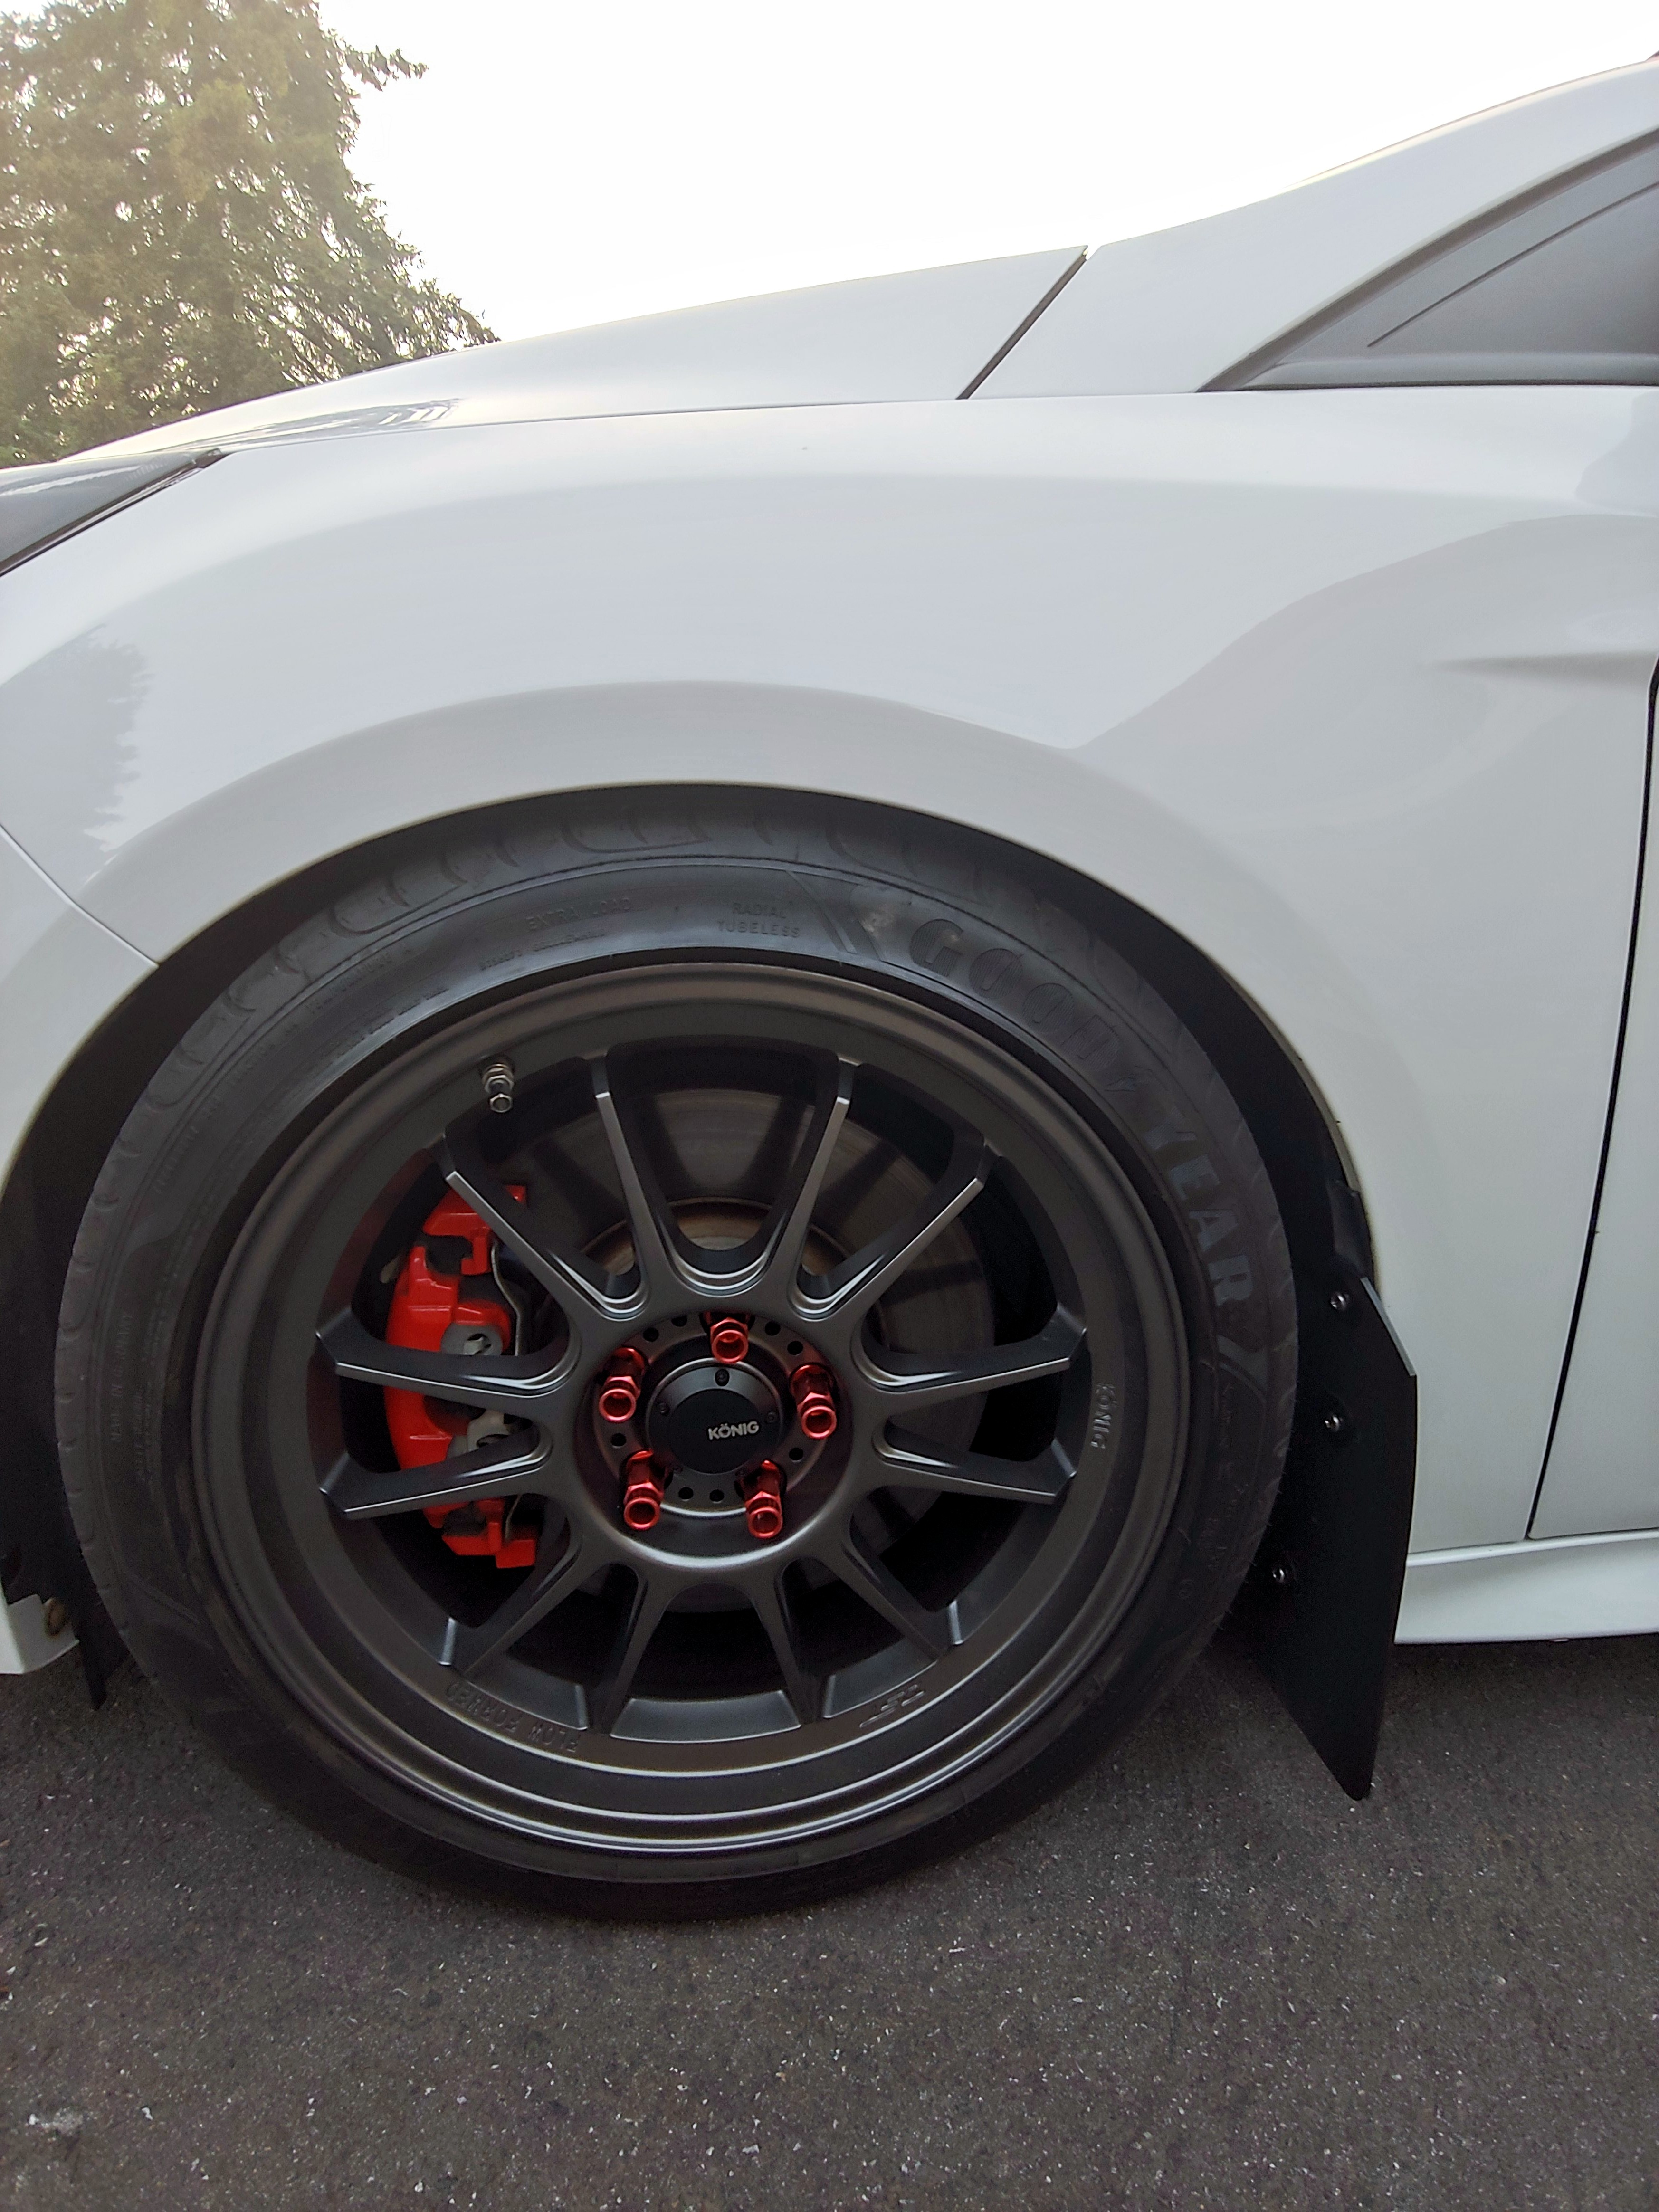 Focus St Forum >> Official Focus ST Wheel and Tire Fitment Picture Thread - Add your setup in here - Page 55